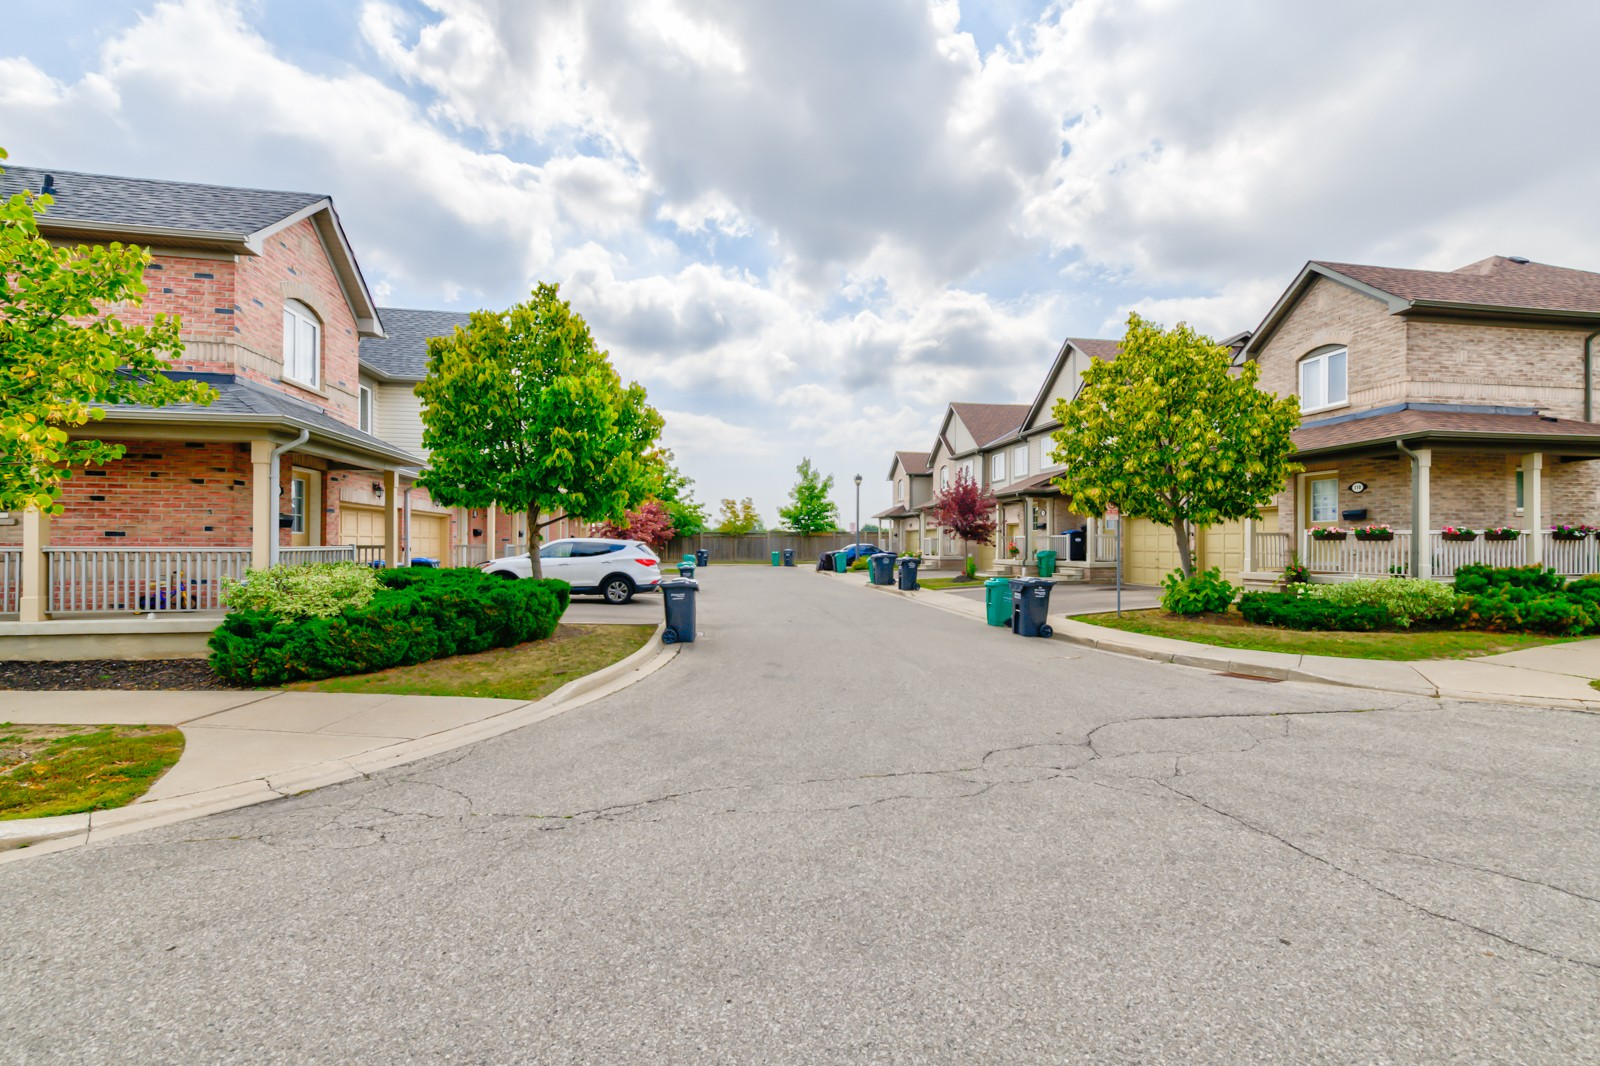 Streetsville Walk at 86 Joymar Dr, Mississauga 1